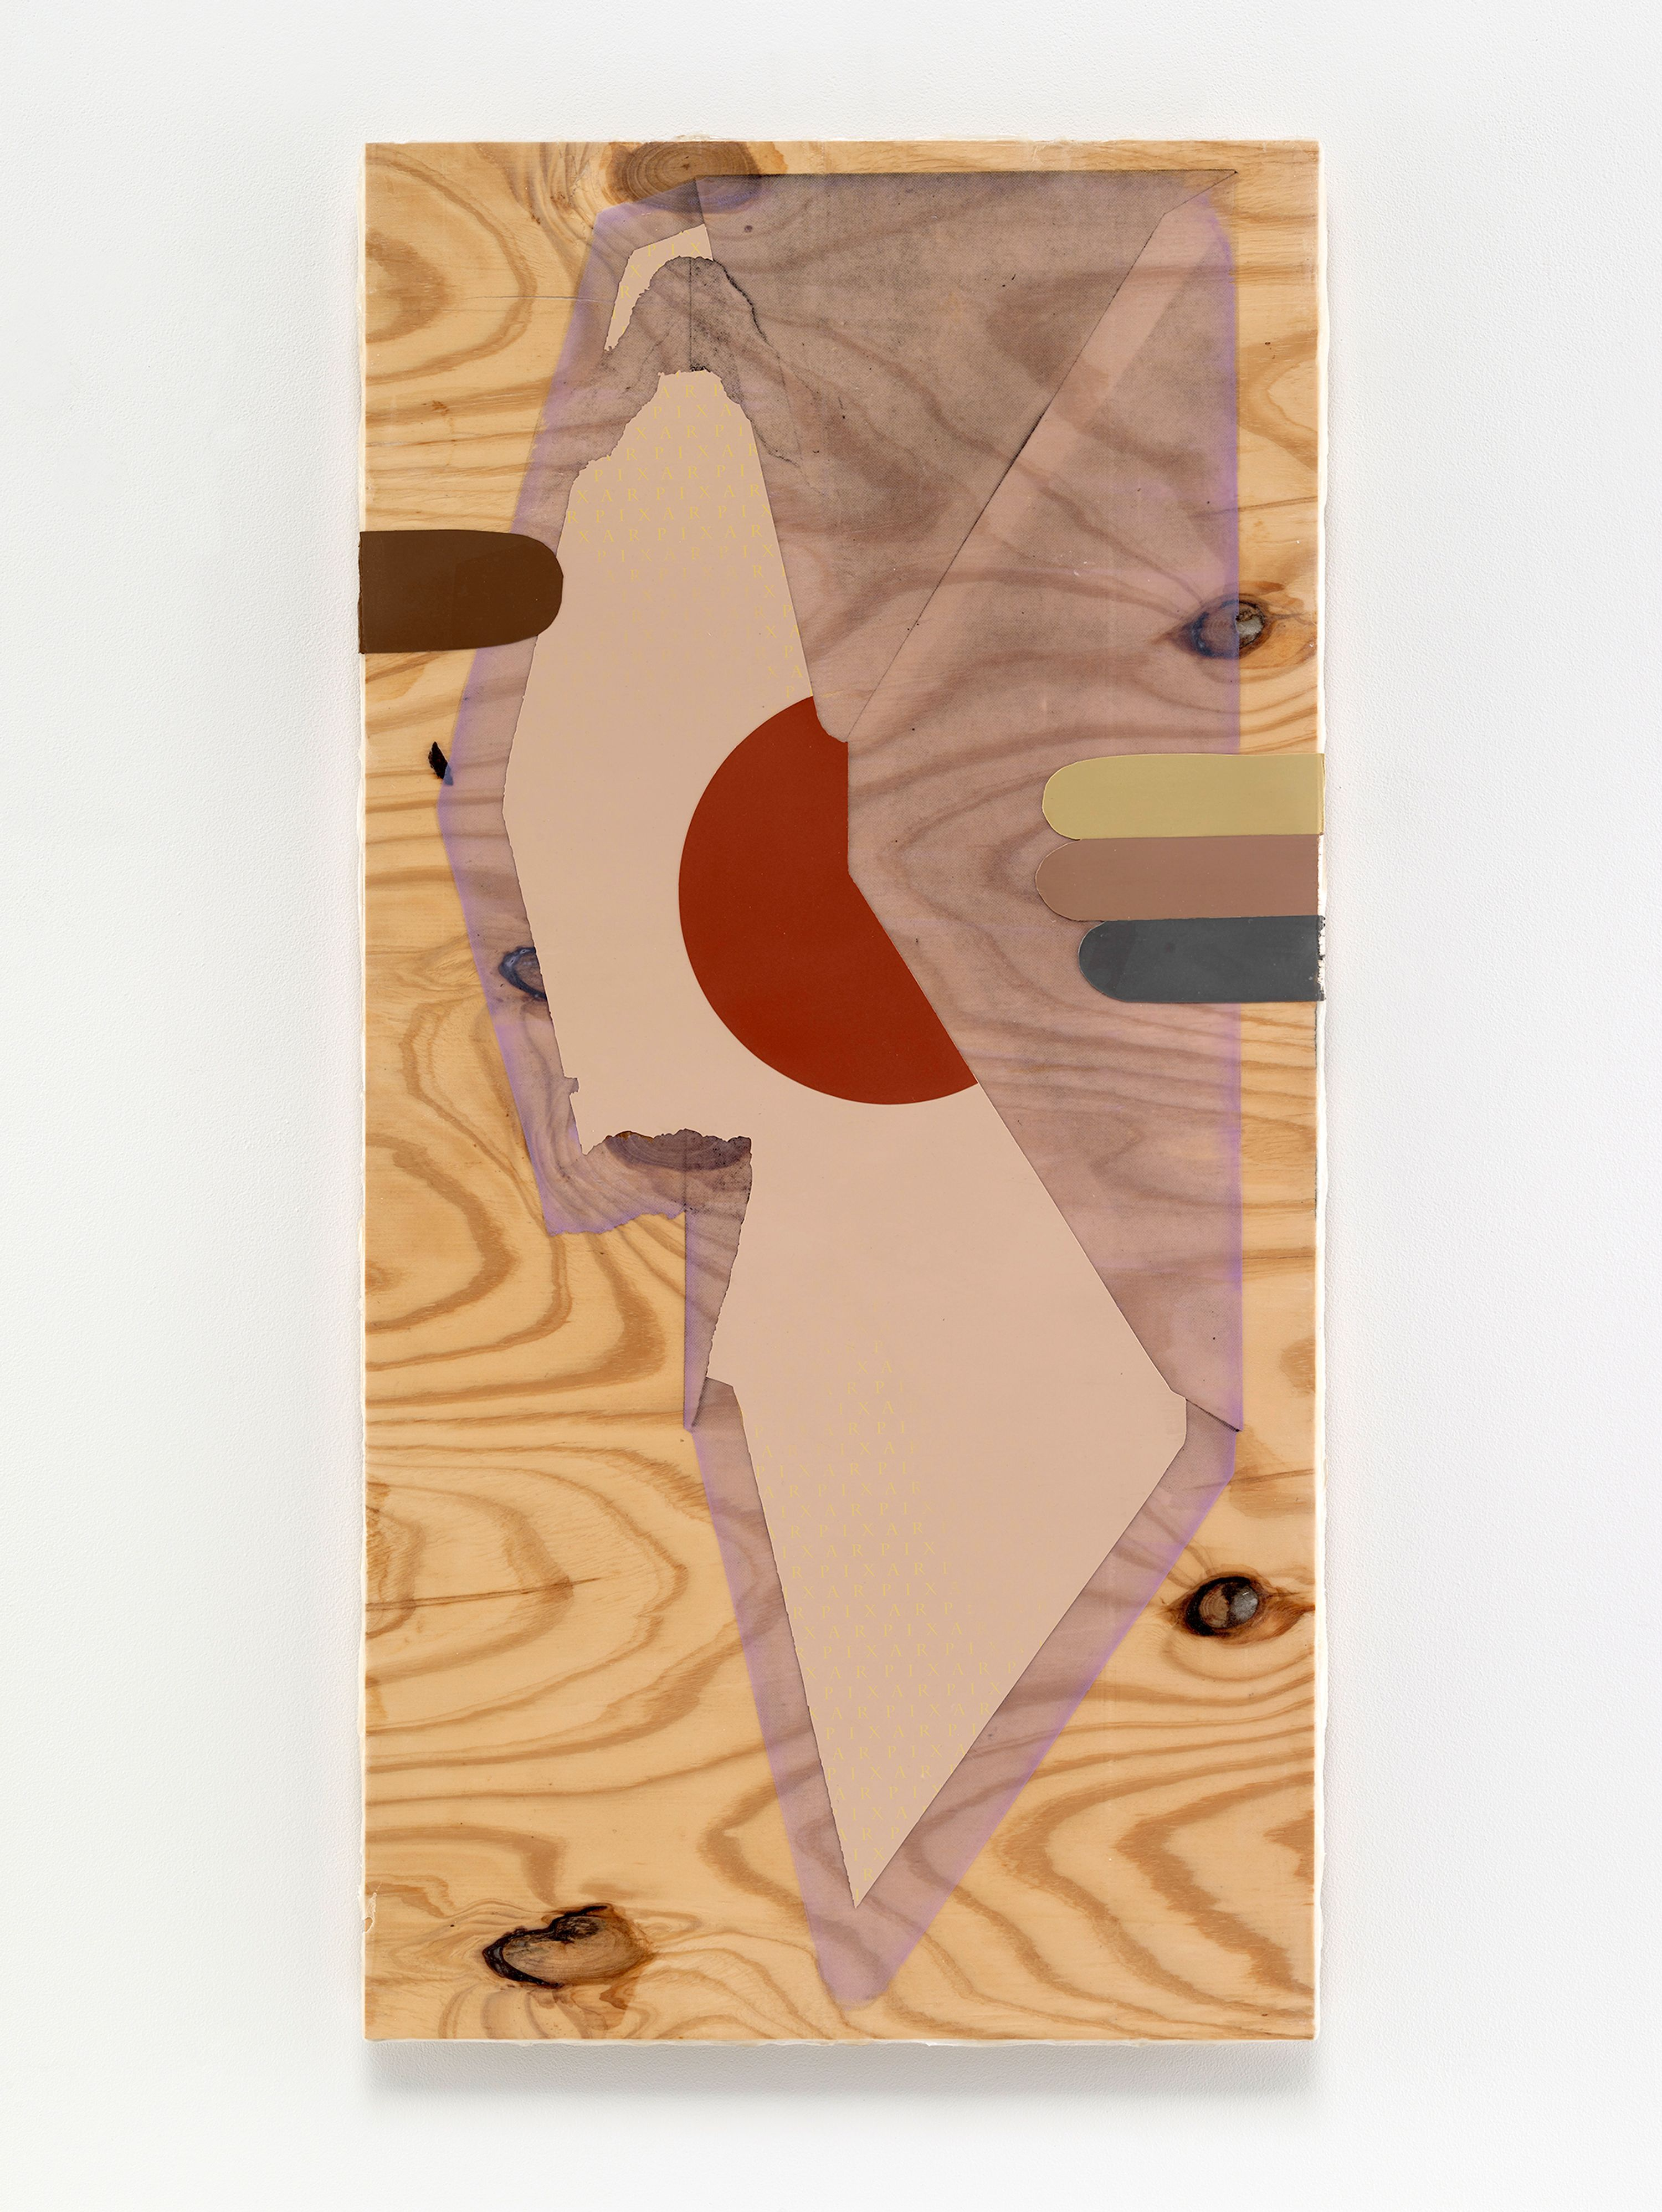 Seth Price, Design for Multiethnic Streetwear Envelope, 2015, Screen inks and pigmented acrylic polymer on wood, 47 x 27 inches. Courtesy of the artist and Petzel, New York.